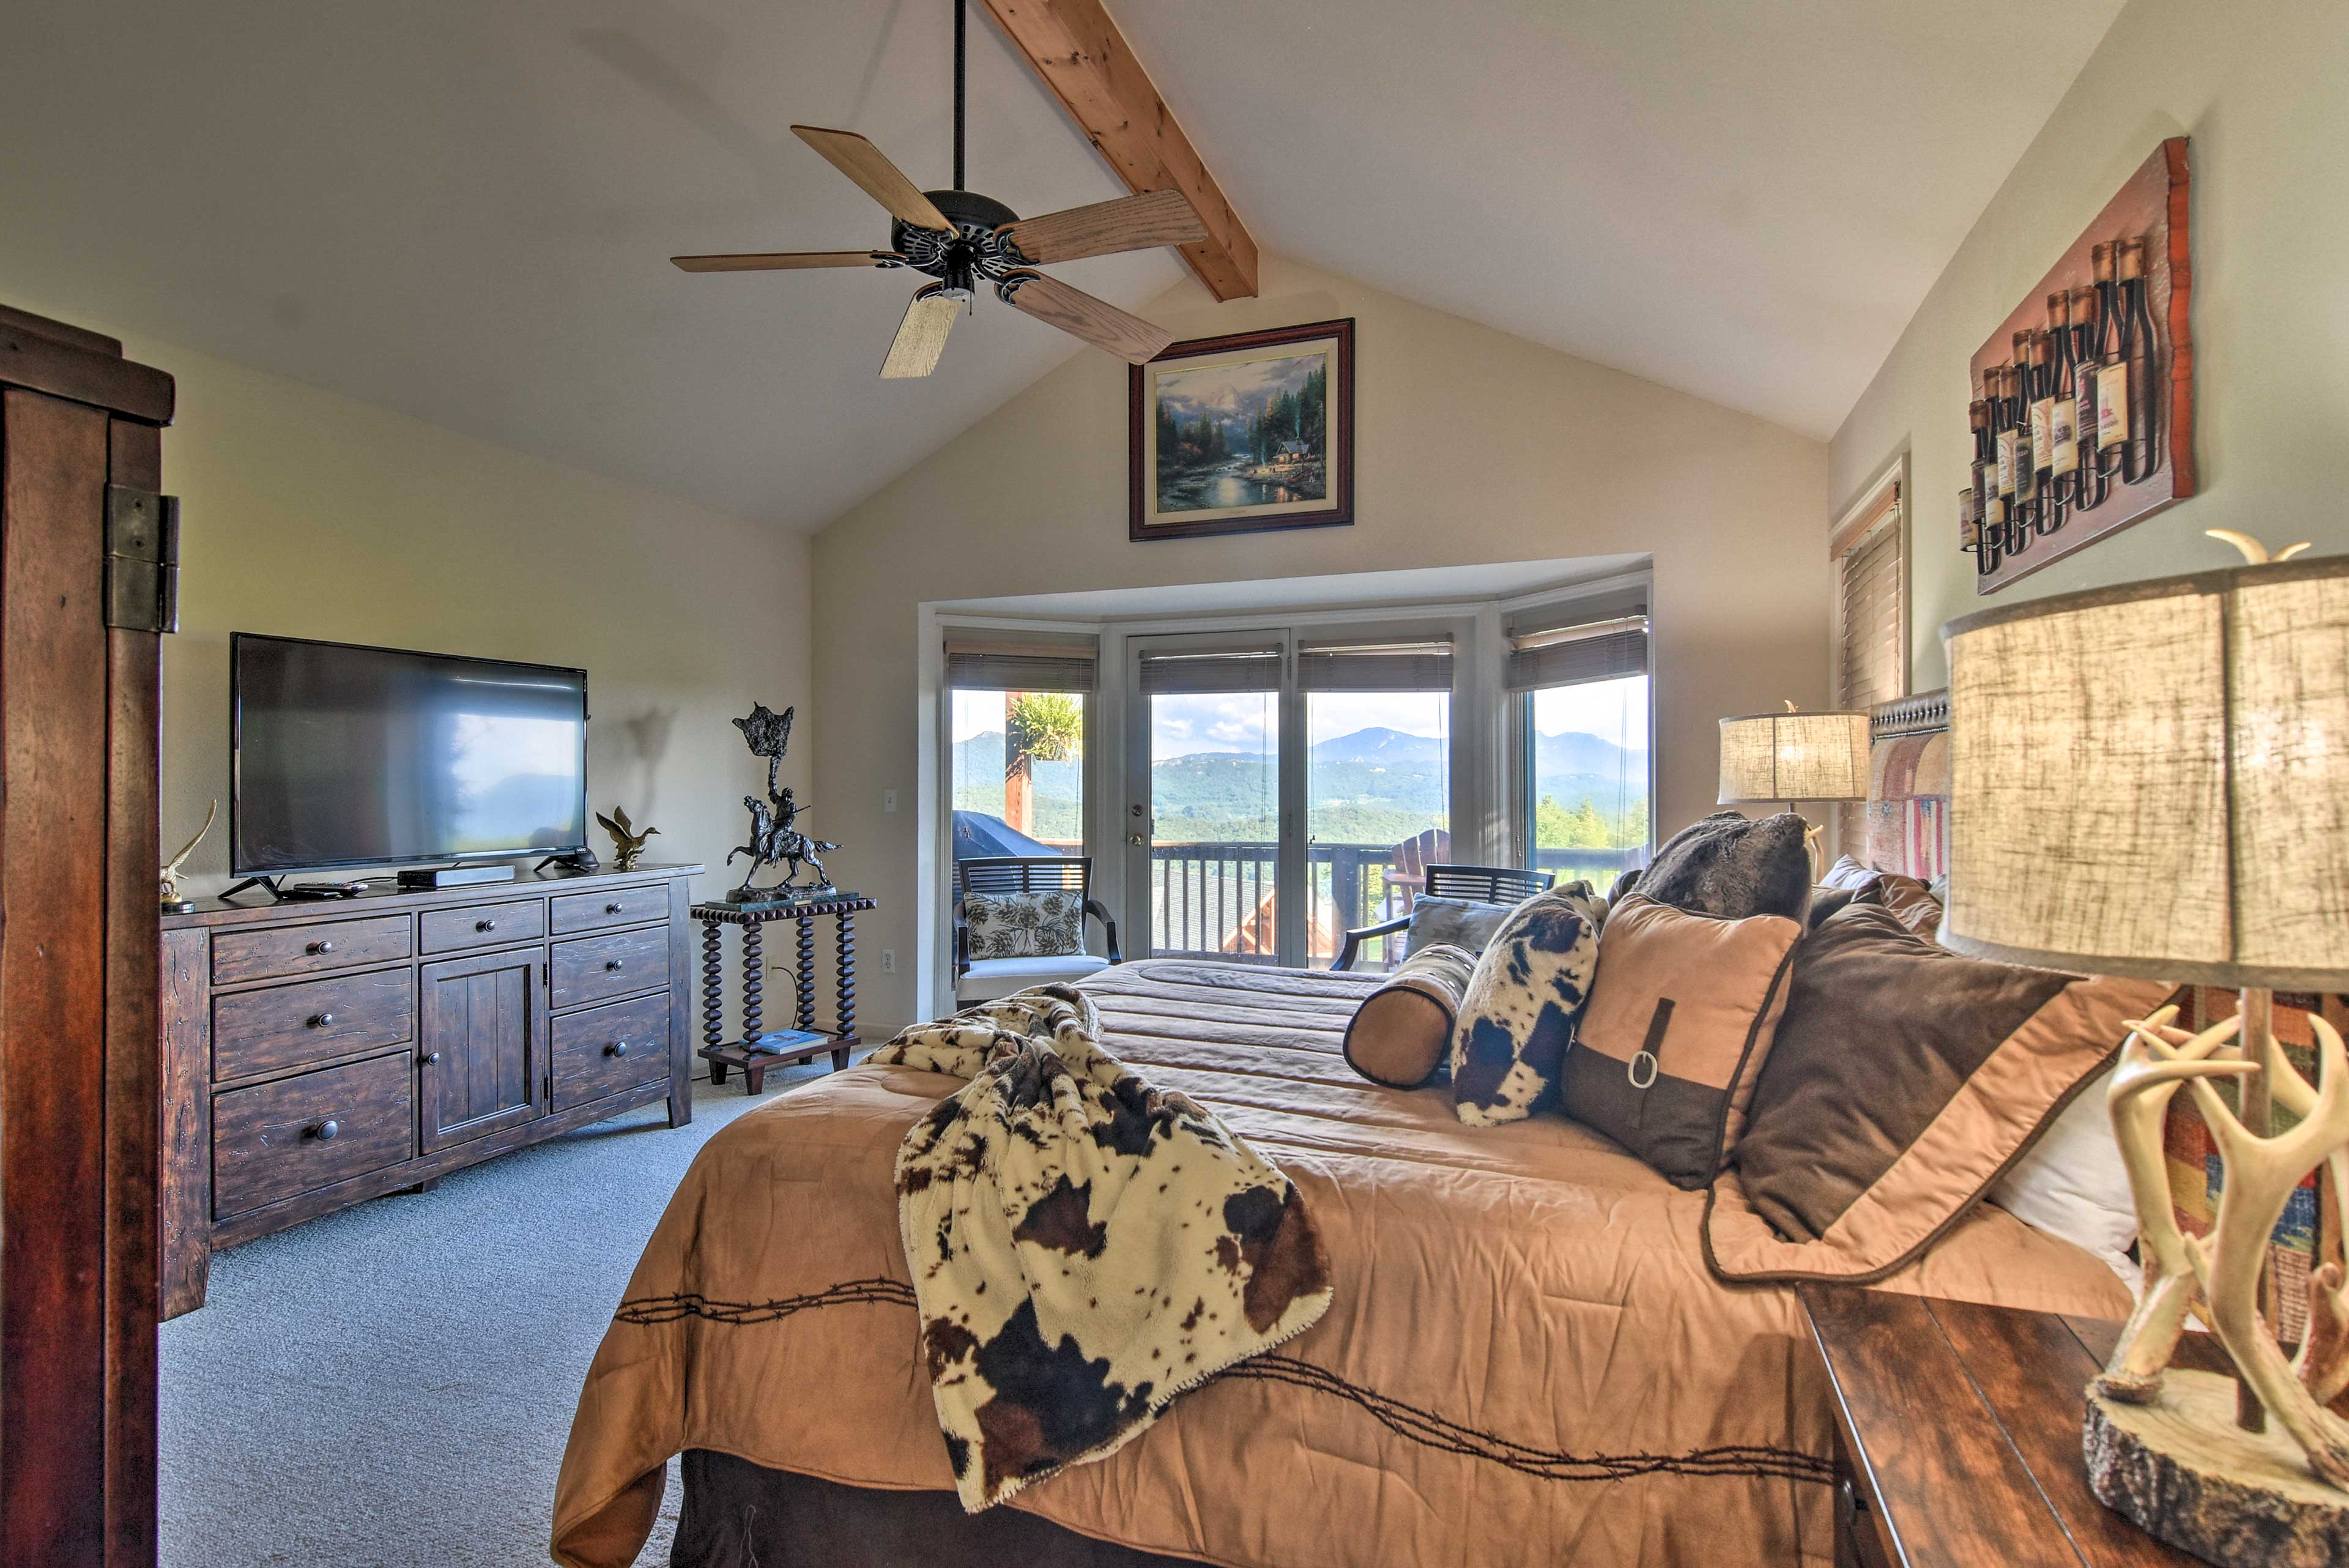 The master bedroom features a king-sized bed and 48-inch flat-screen TV.